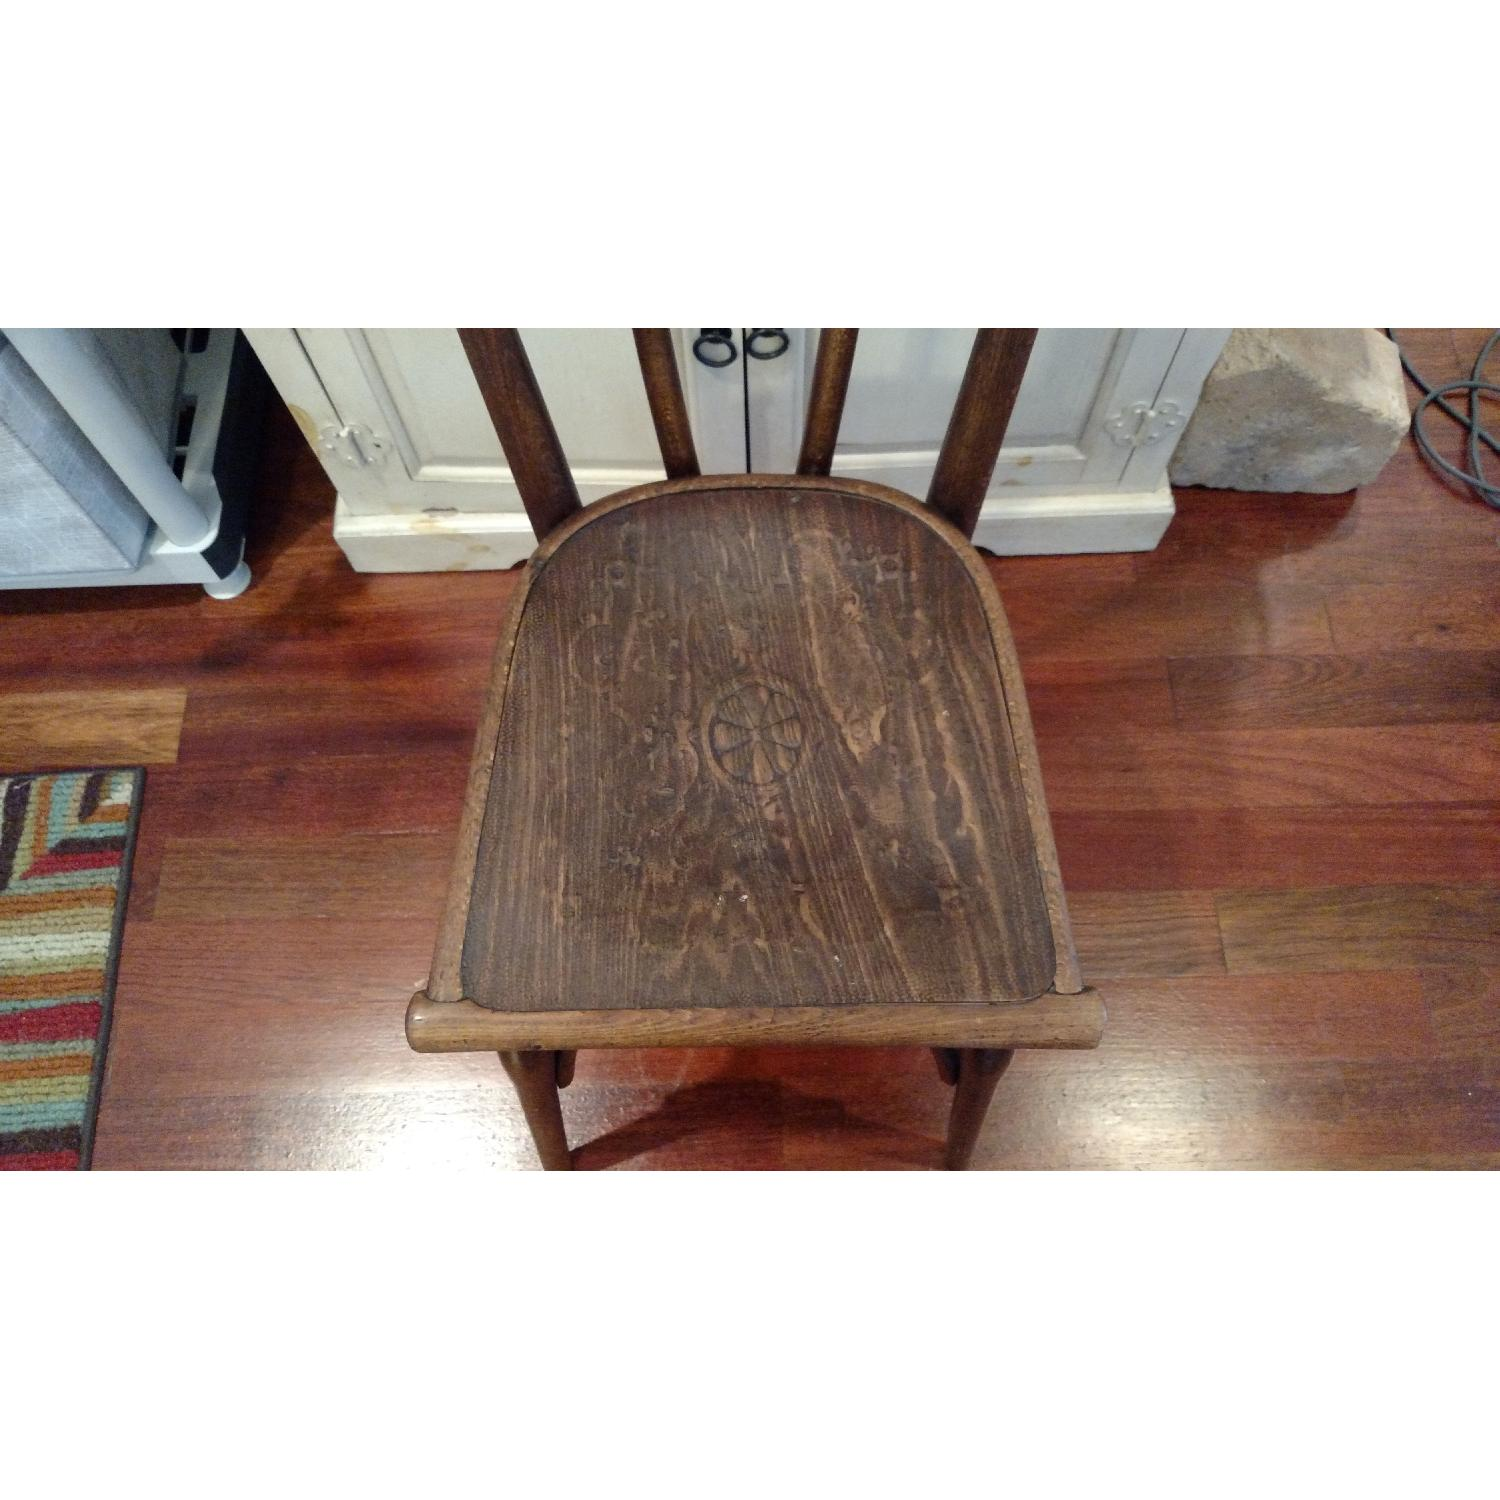 Thonet circa 1920s Bentwood Dining Chair w/ Floral Design Wood Seat - image-2